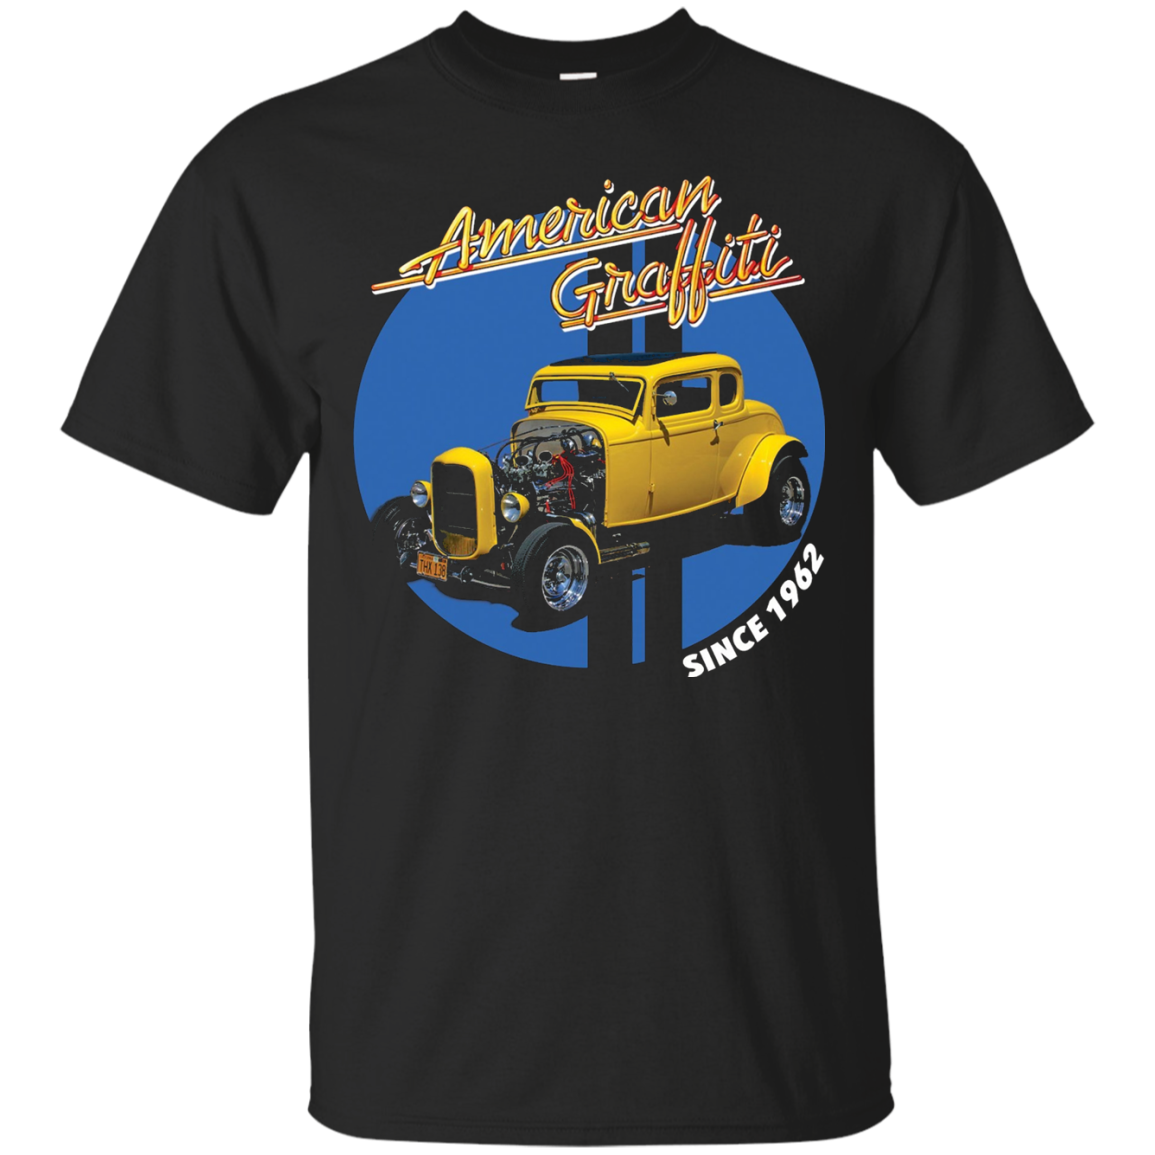 AMERICAN GRAFFITI - SPEED SHOP - T-Shirt